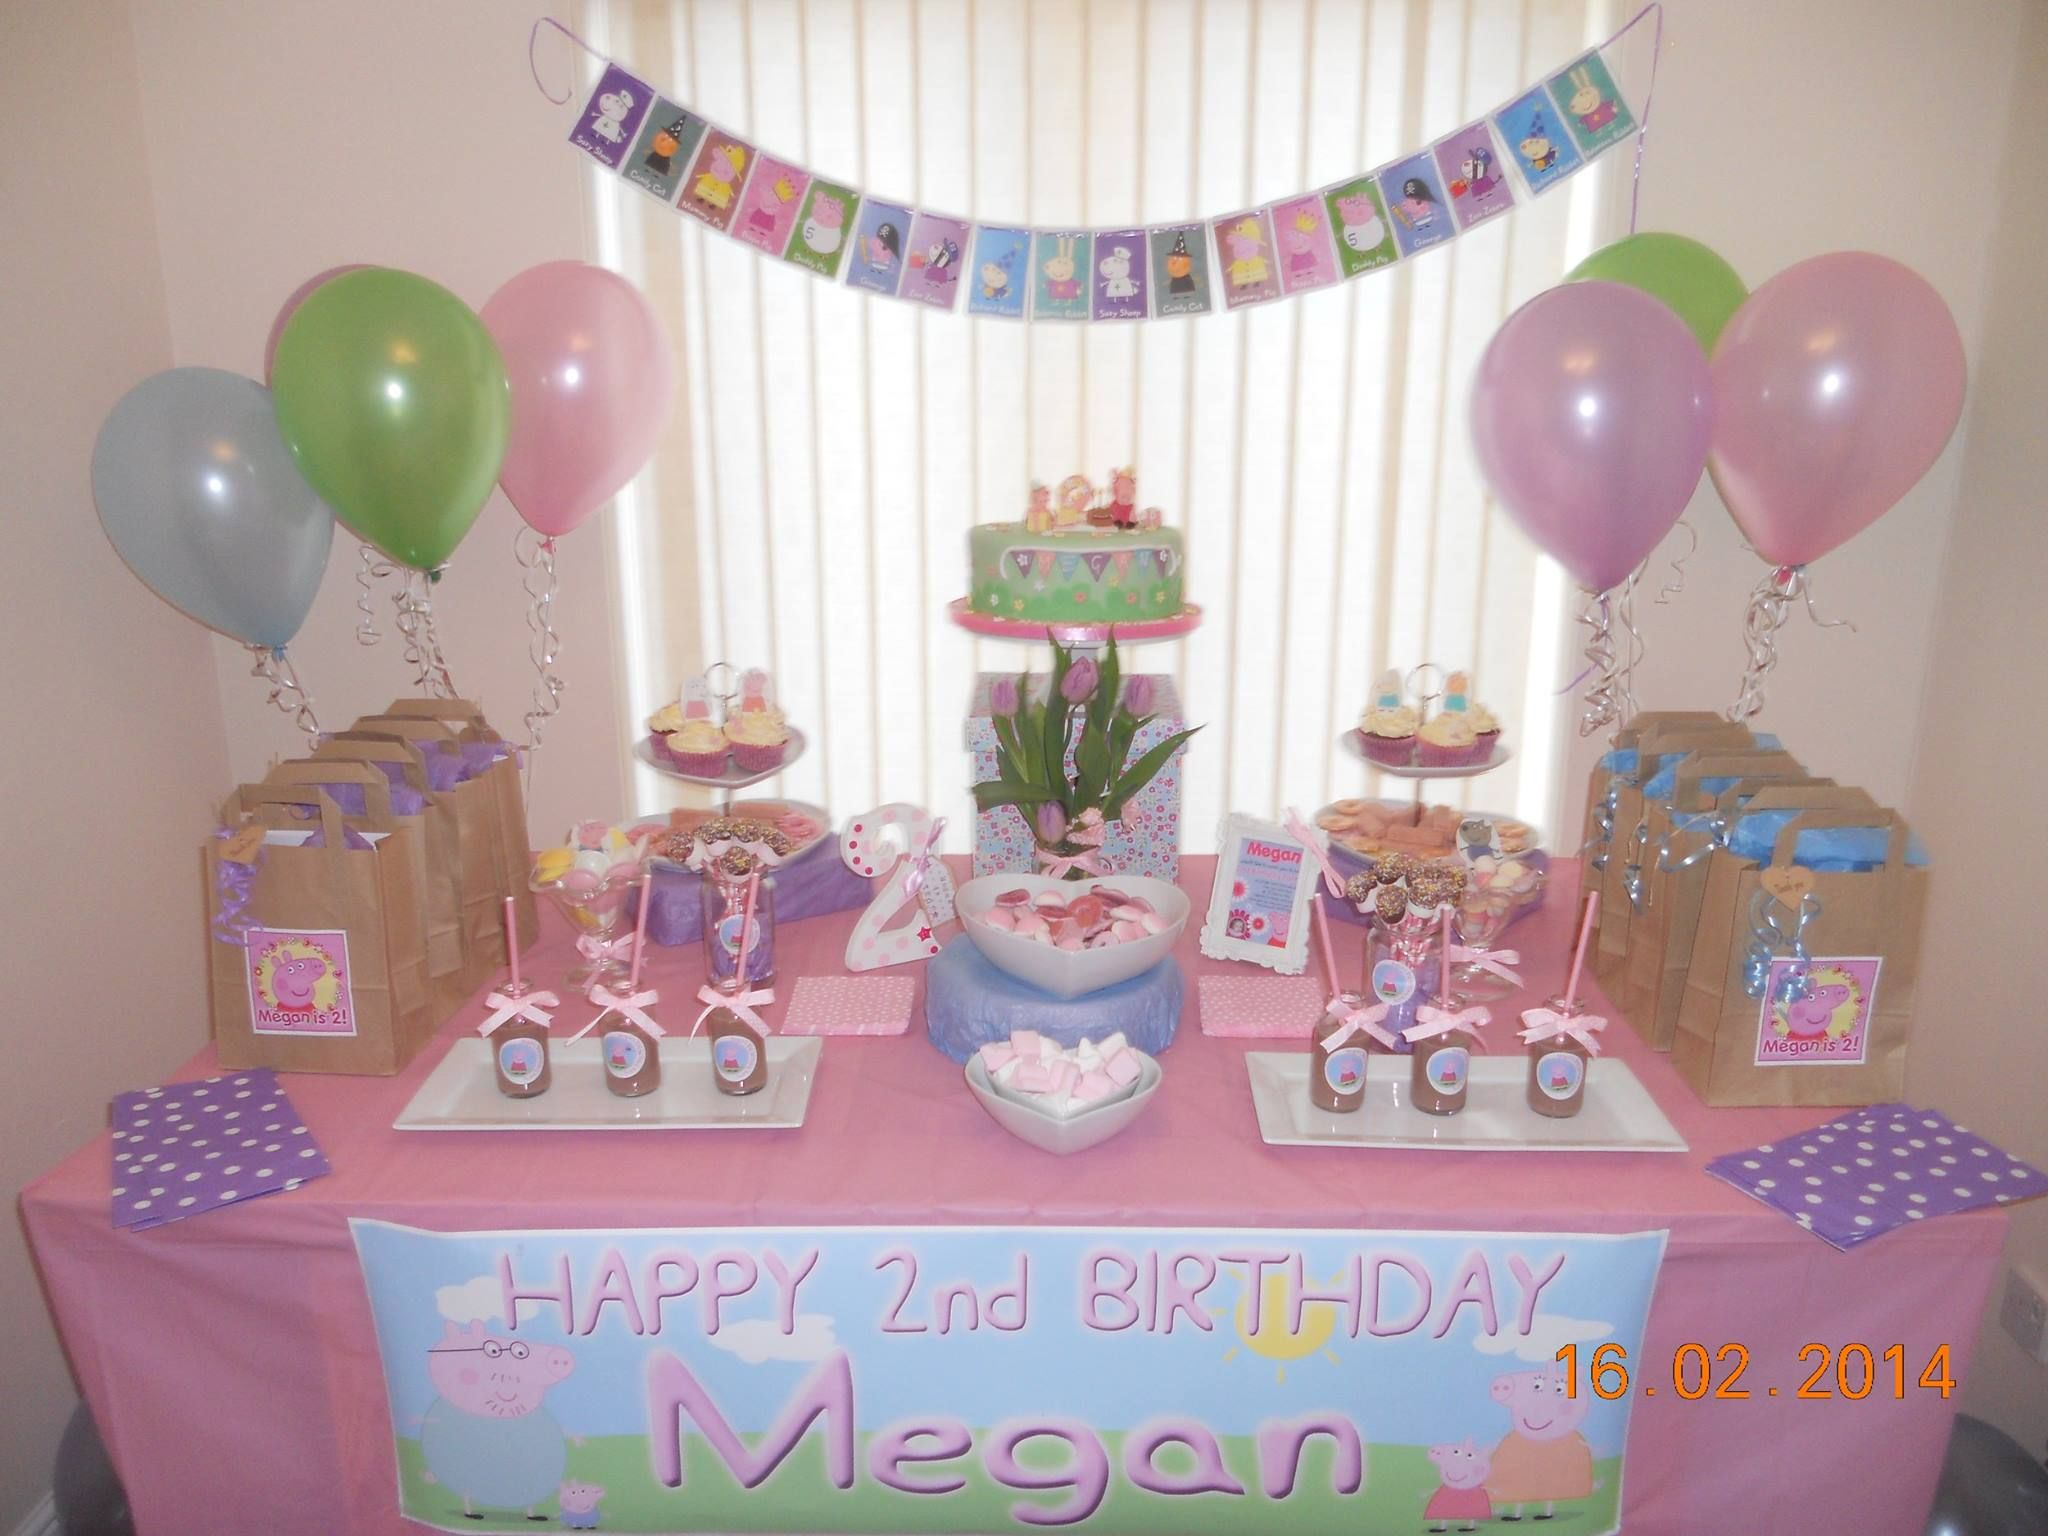 Megan's Peppa Pig Birthday Party 16th Feb 2014